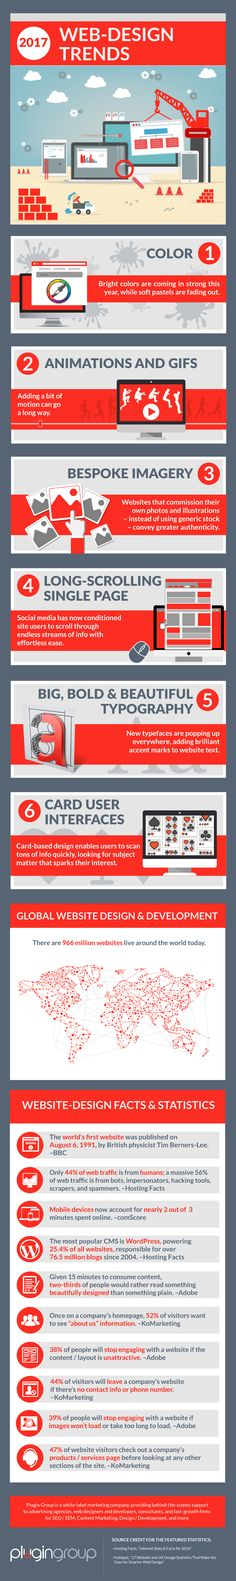 2017 Web-Design Trends - #infographic